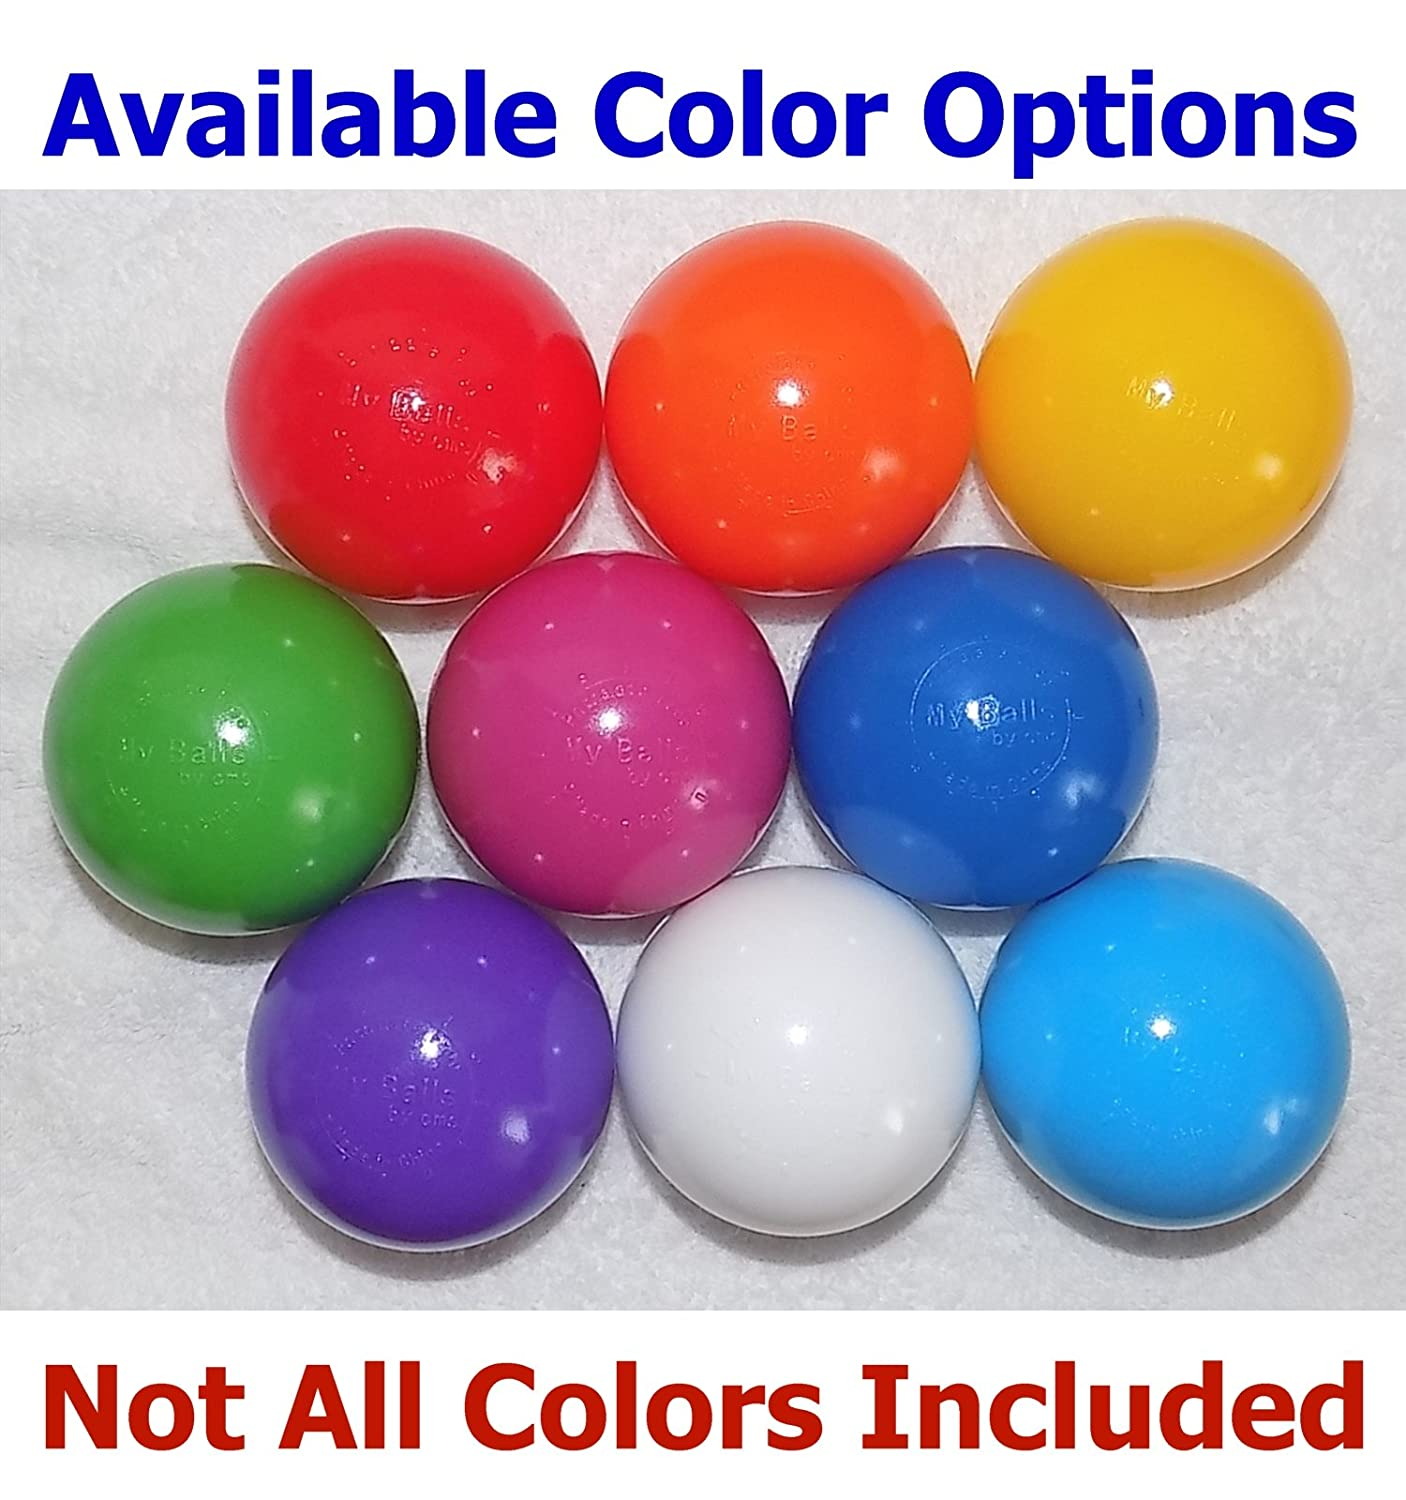 Color Jumbo 3 HD Commercial Grade Ball Pit Balls M-Pink, 100 Ros/é Crush-Proof Phthalate Free BPA Free PVC Free Lead Free Non-Toxic Non-Recycled Plastic My Balls Pack of 100 Macaron-Pink